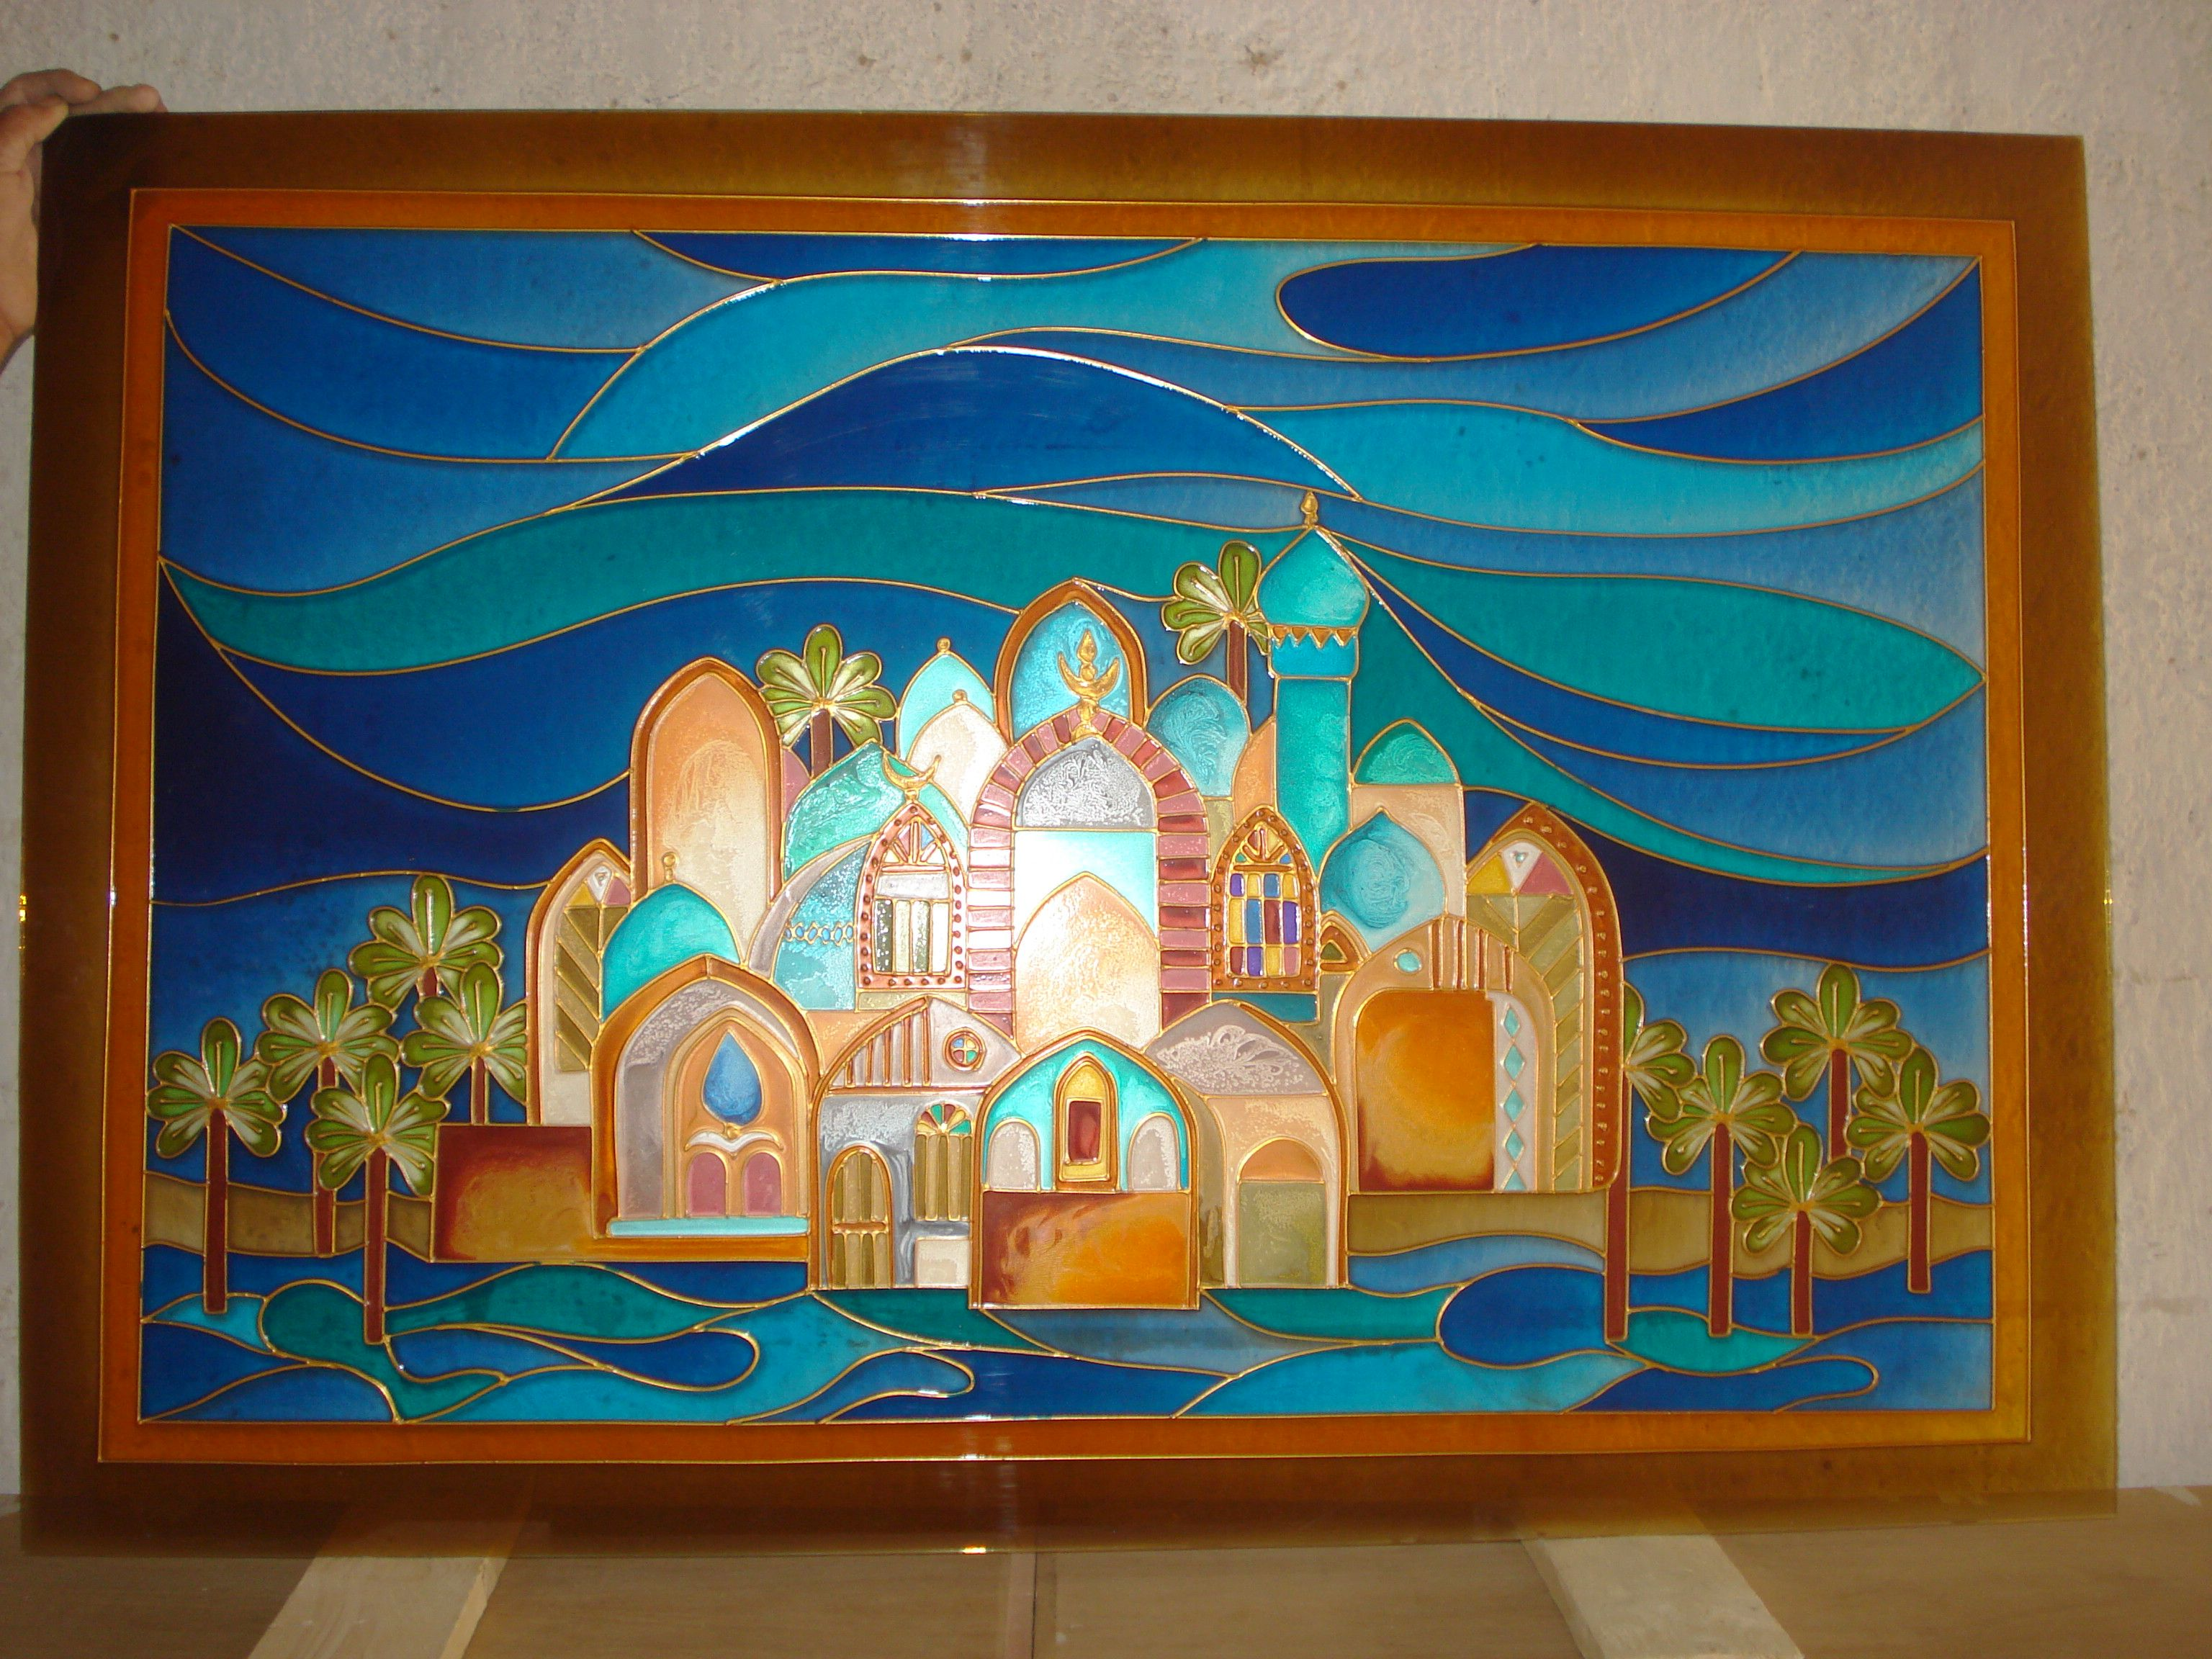 Pin By Eman Ali On Stained Glasse Happy Art Christmas Art Moroccan Art